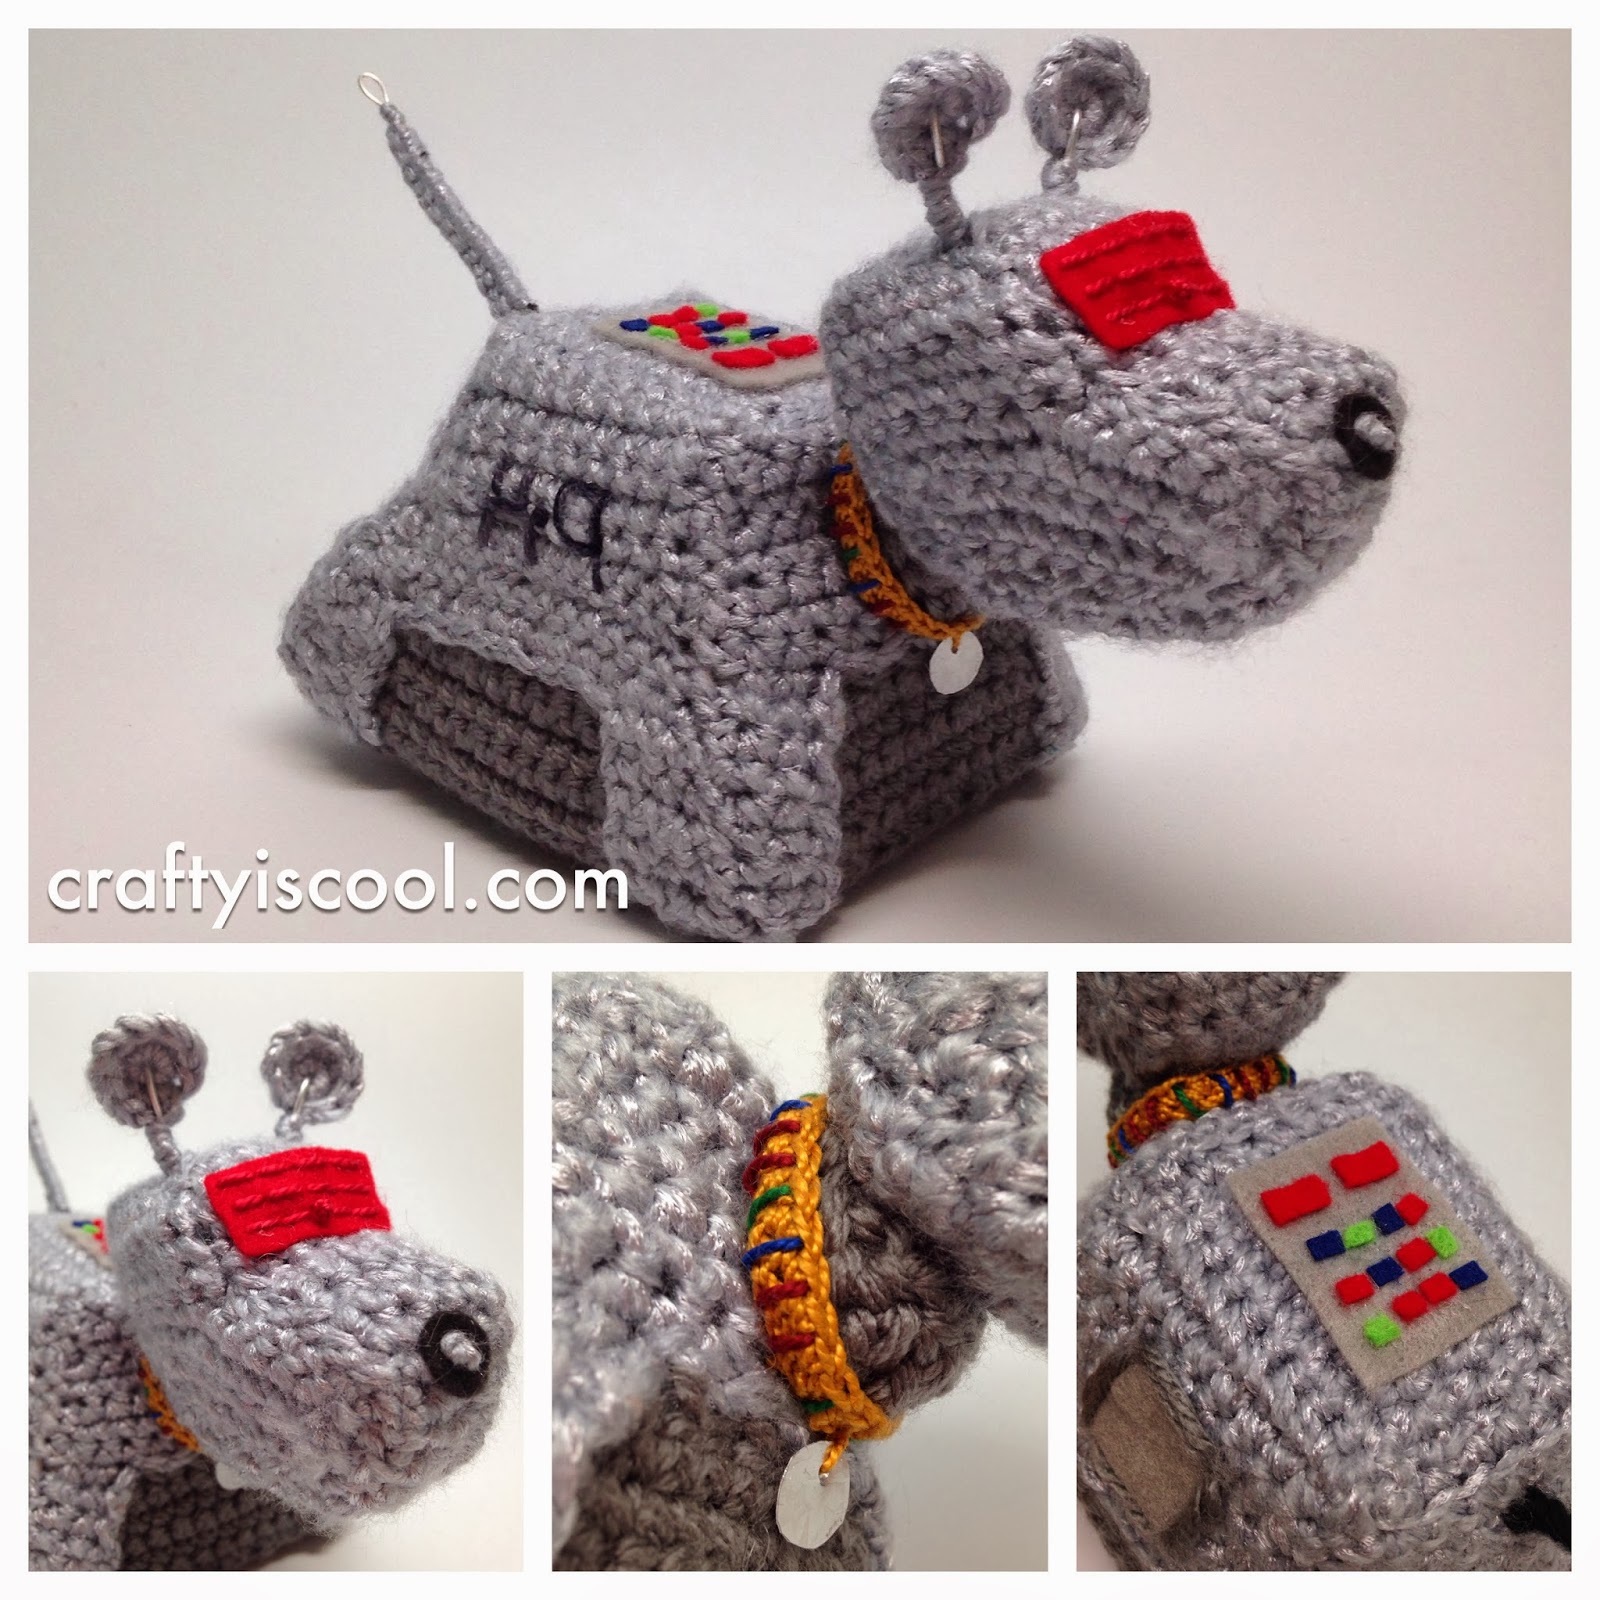 CRAFTYisCOOL: K-9!